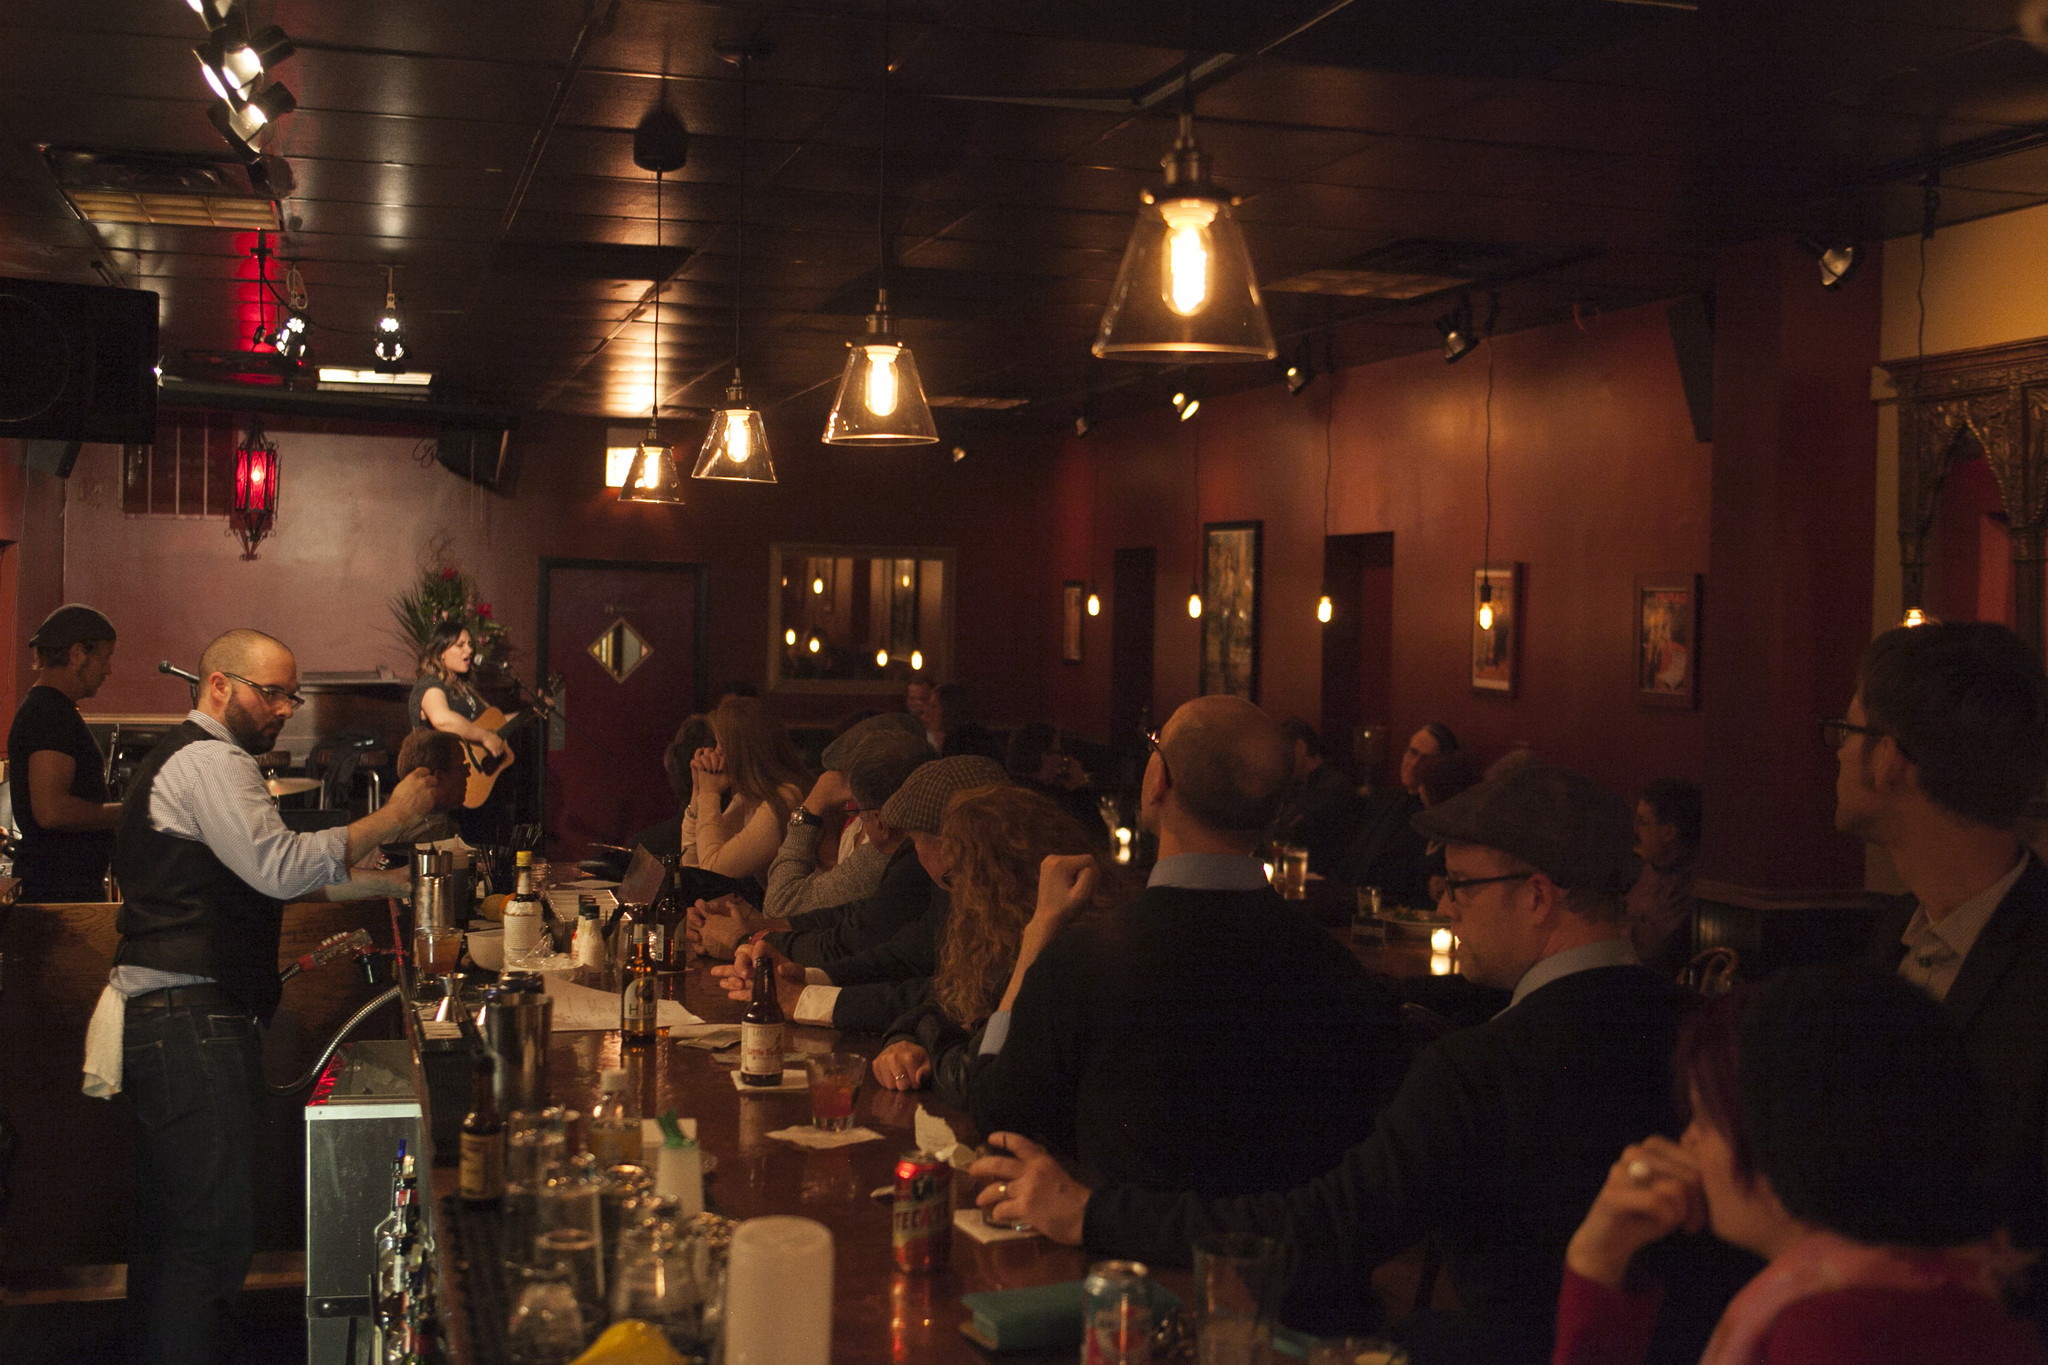 Patrons watch from the bar as Abbi Rajasekhar (cq) performs at High Hat Club's grand opening, Oct. 4, 2014.  (Kristan Lieb/For the Chicago Tribune)